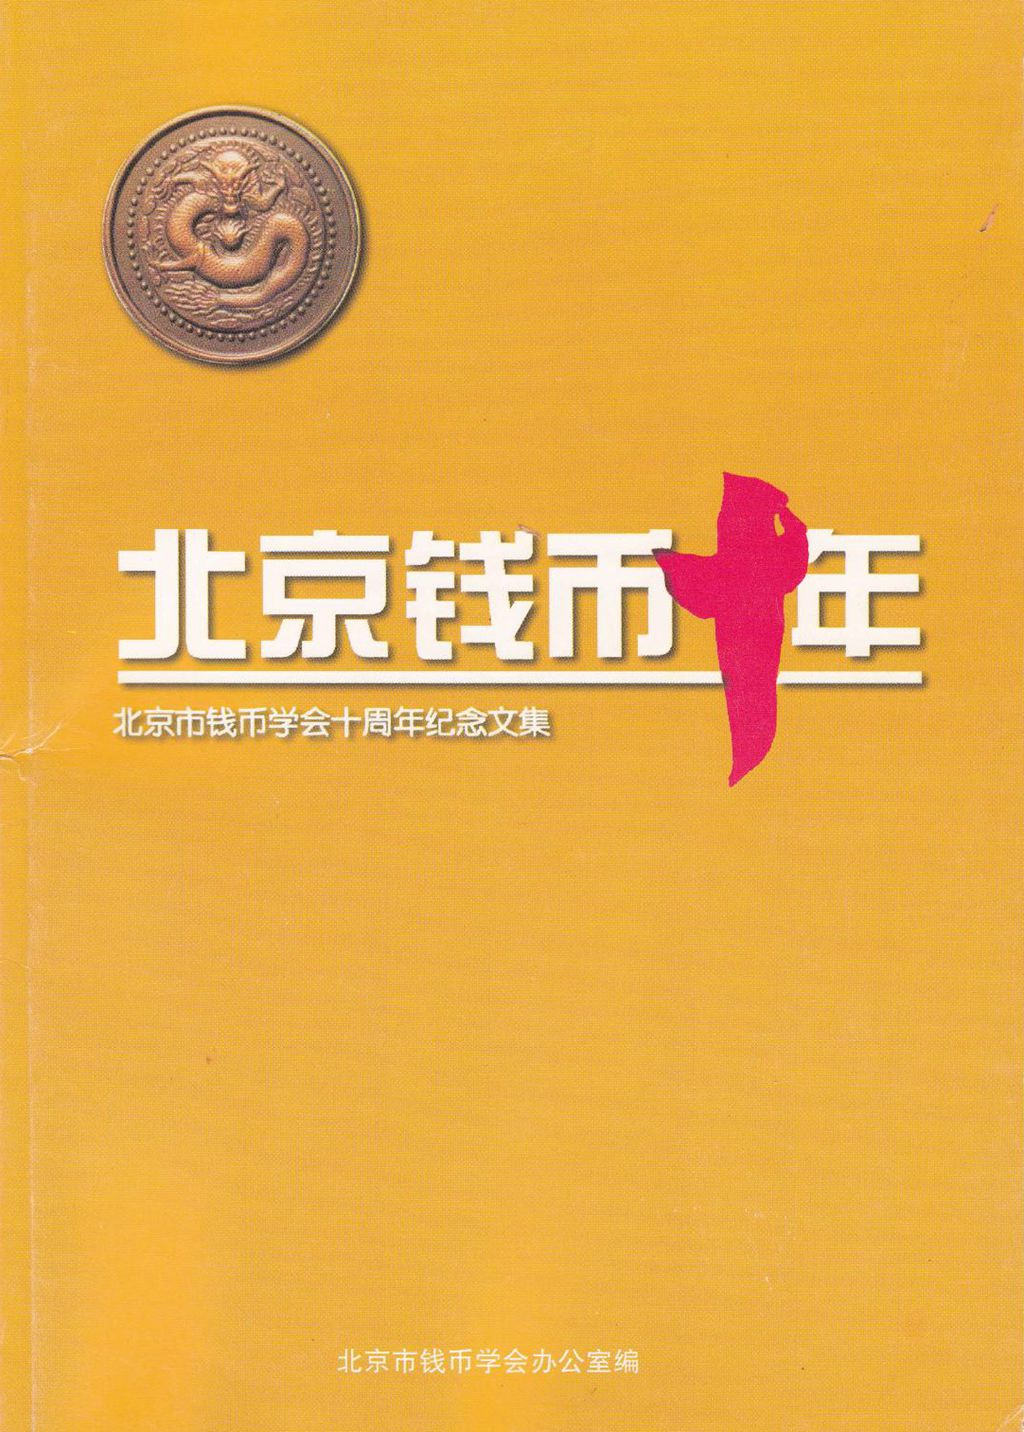 F1655, Ten Years Anniversary of Beijing Numismatics Society, Academic Researh 1998